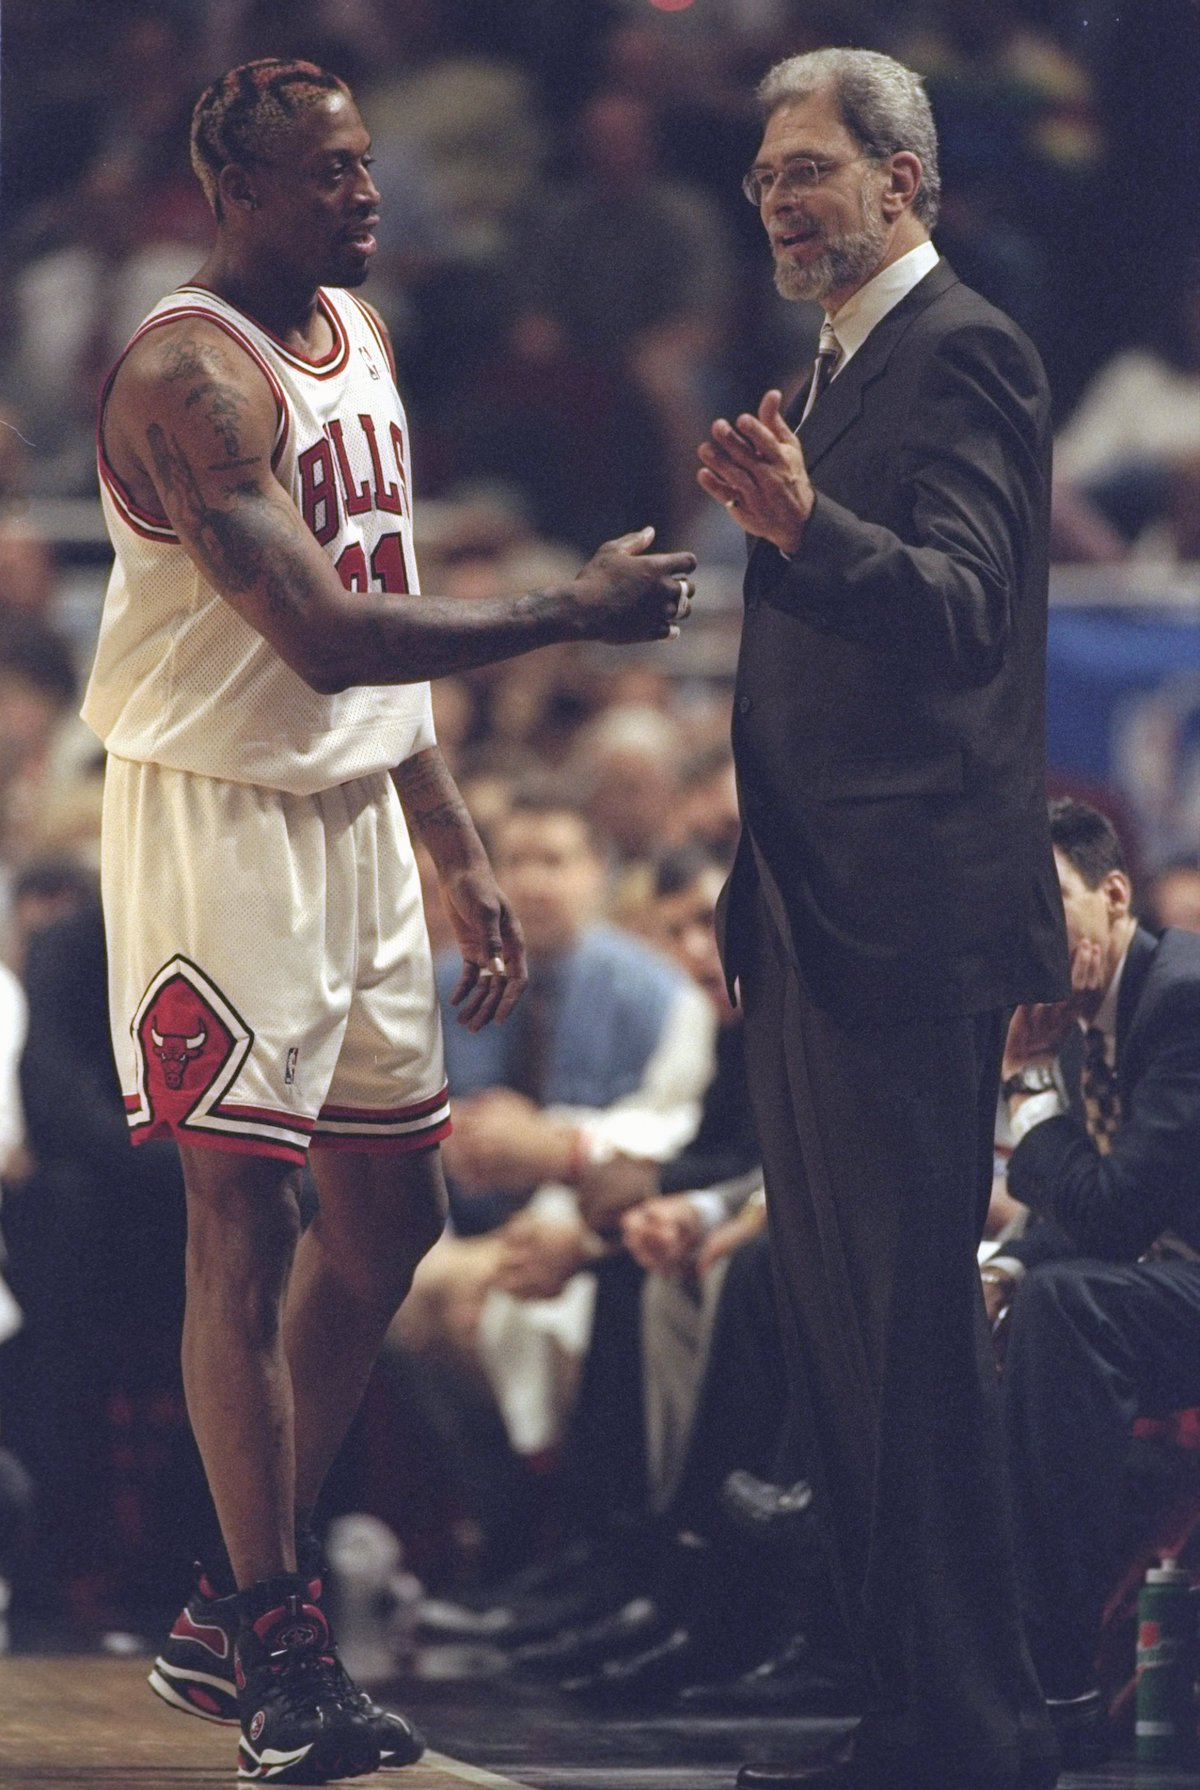 27 May 1998: Dennis Rodman #91 discusses a play with Chicago Bulls head coach Phil Jackson during an Eastern Conference Final game against the Indiana Pacers at the United Center in Chicago, Illinois. The Bulls defeated the Pacers 106-87.